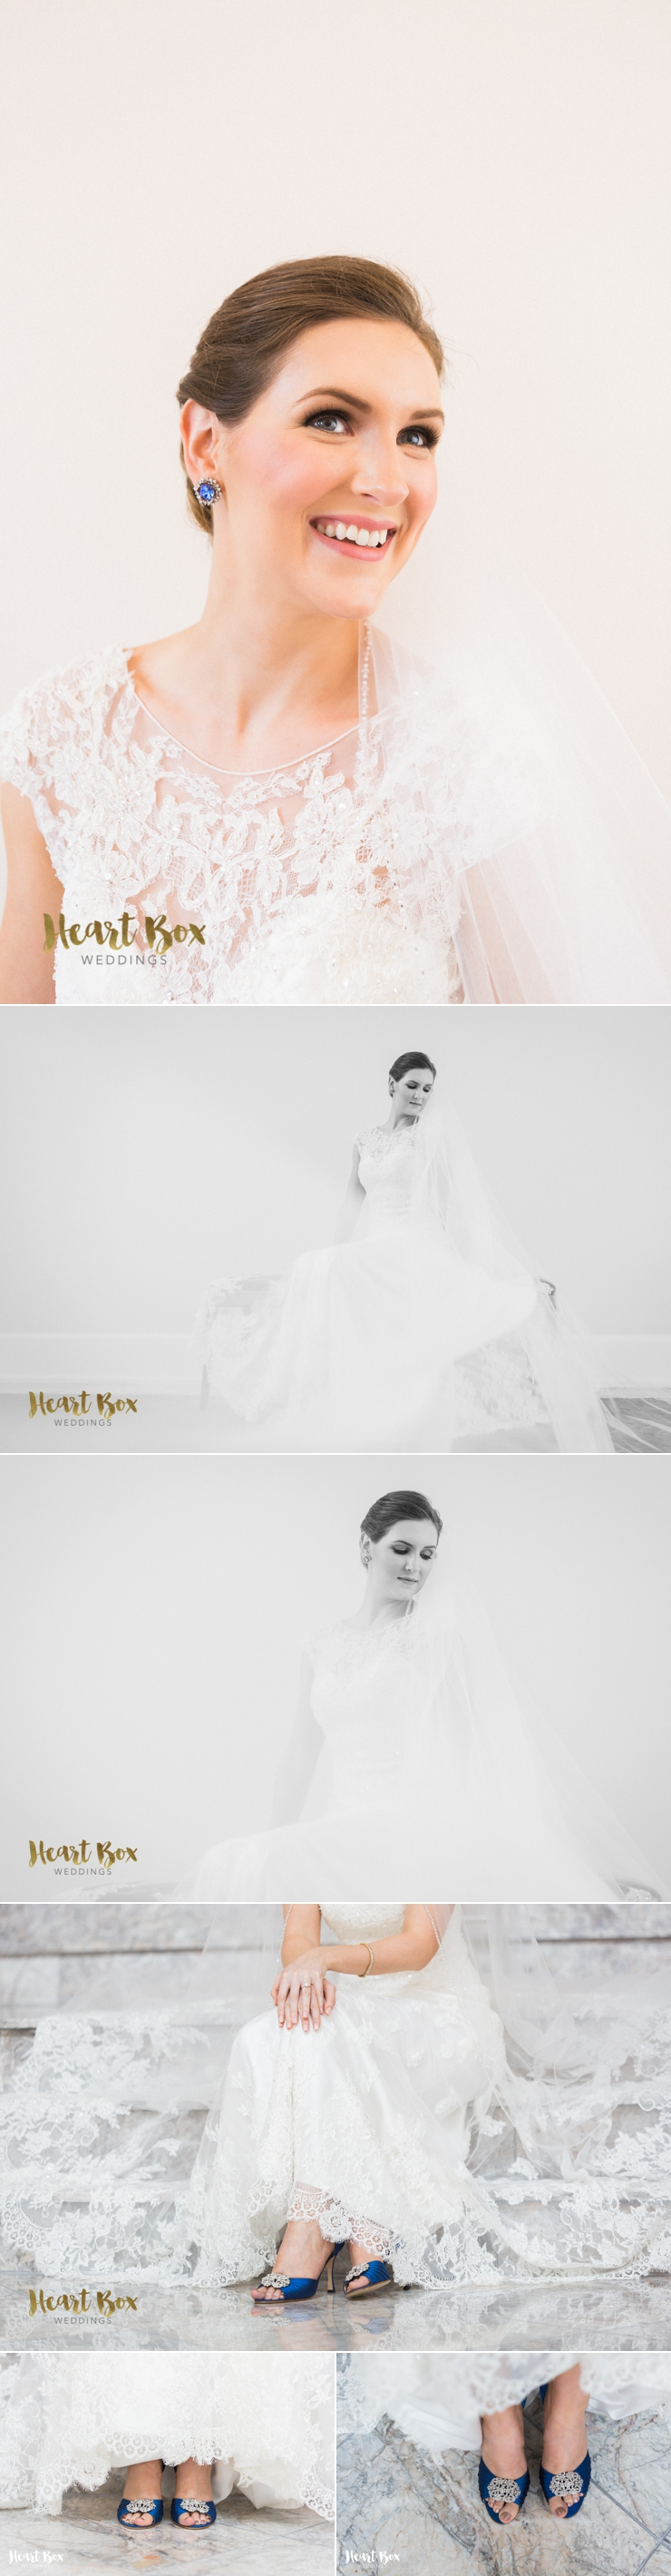 Mary Styrsky Bridal Collages 3.jpg